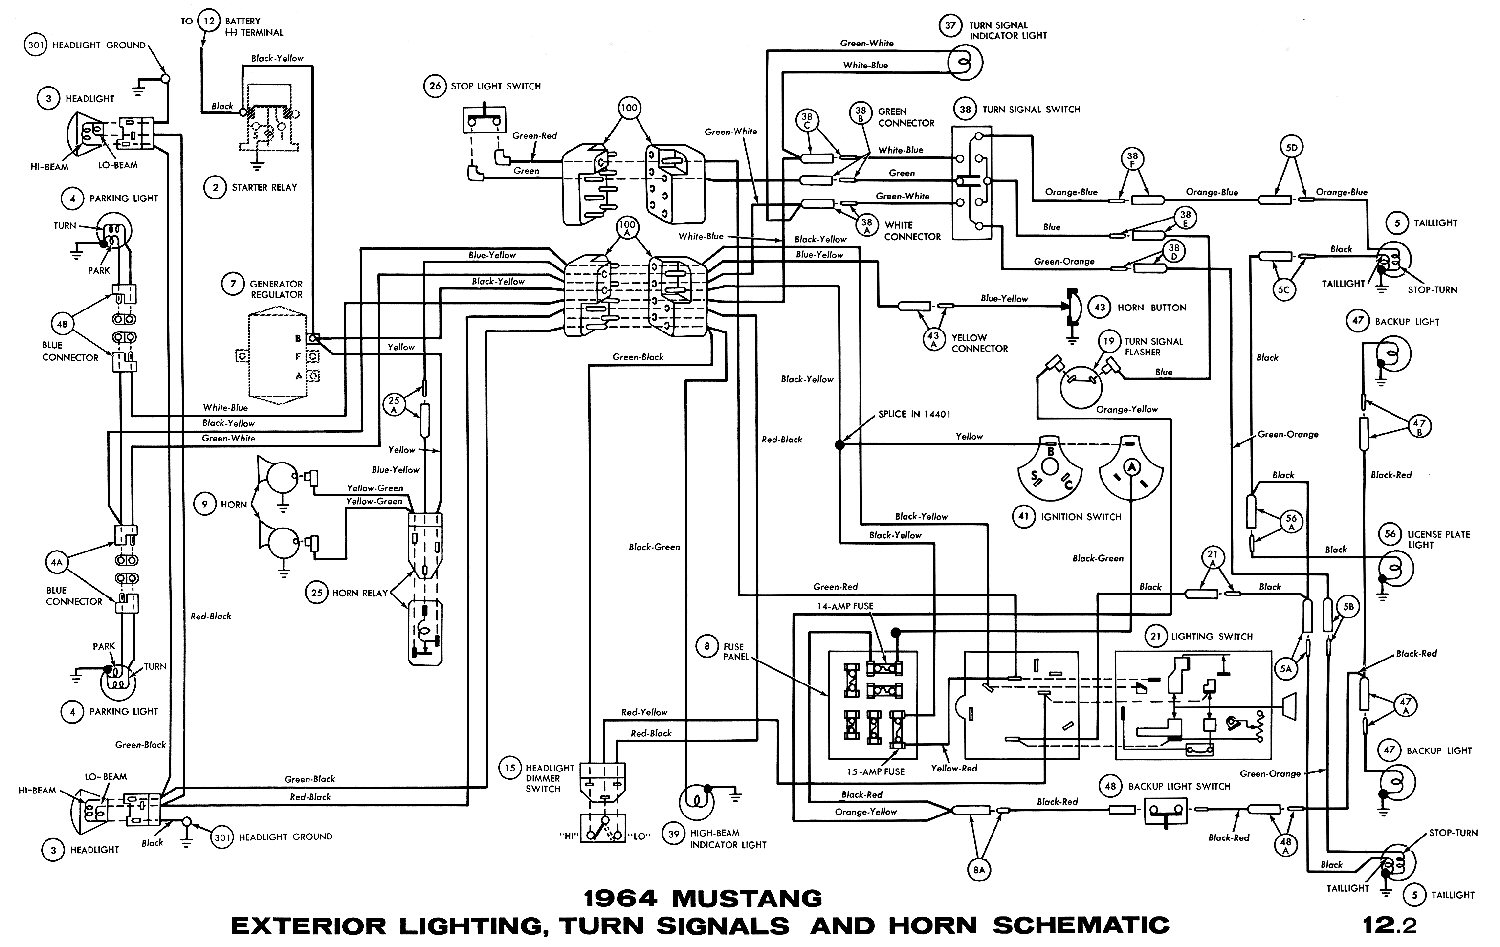 1964i 1964 mustang wiring diagrams average joe restoration 93 mustang turn signal wiring diagram at mr168.co